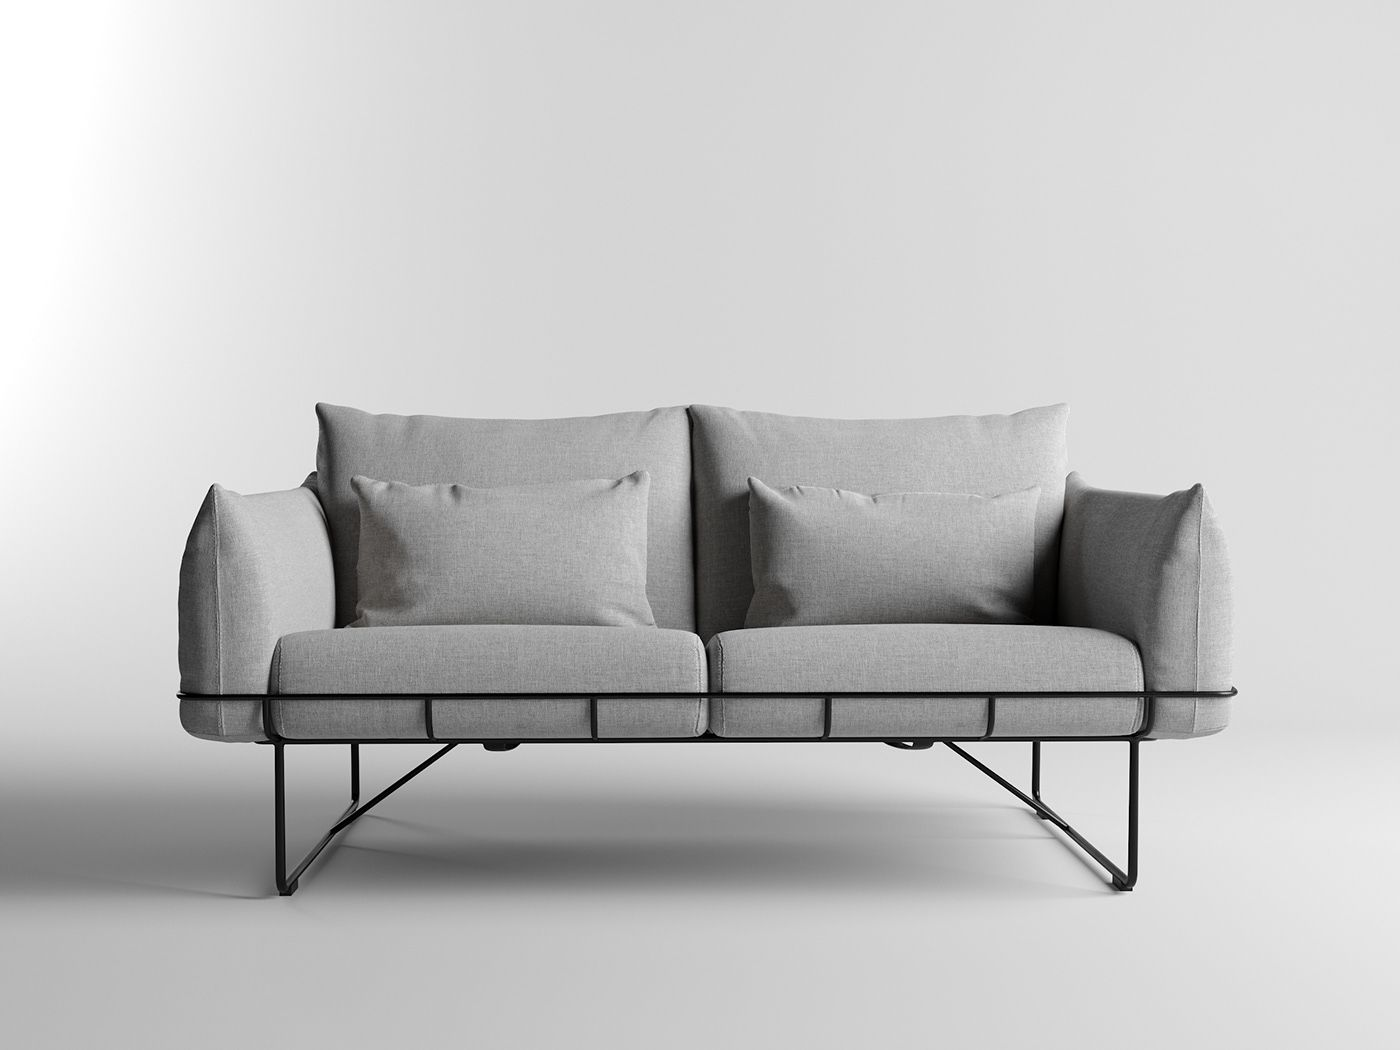 Sofa Set Images Free Download 3d Model Wireframe Sofa 136 Free Download Furniture In 2019